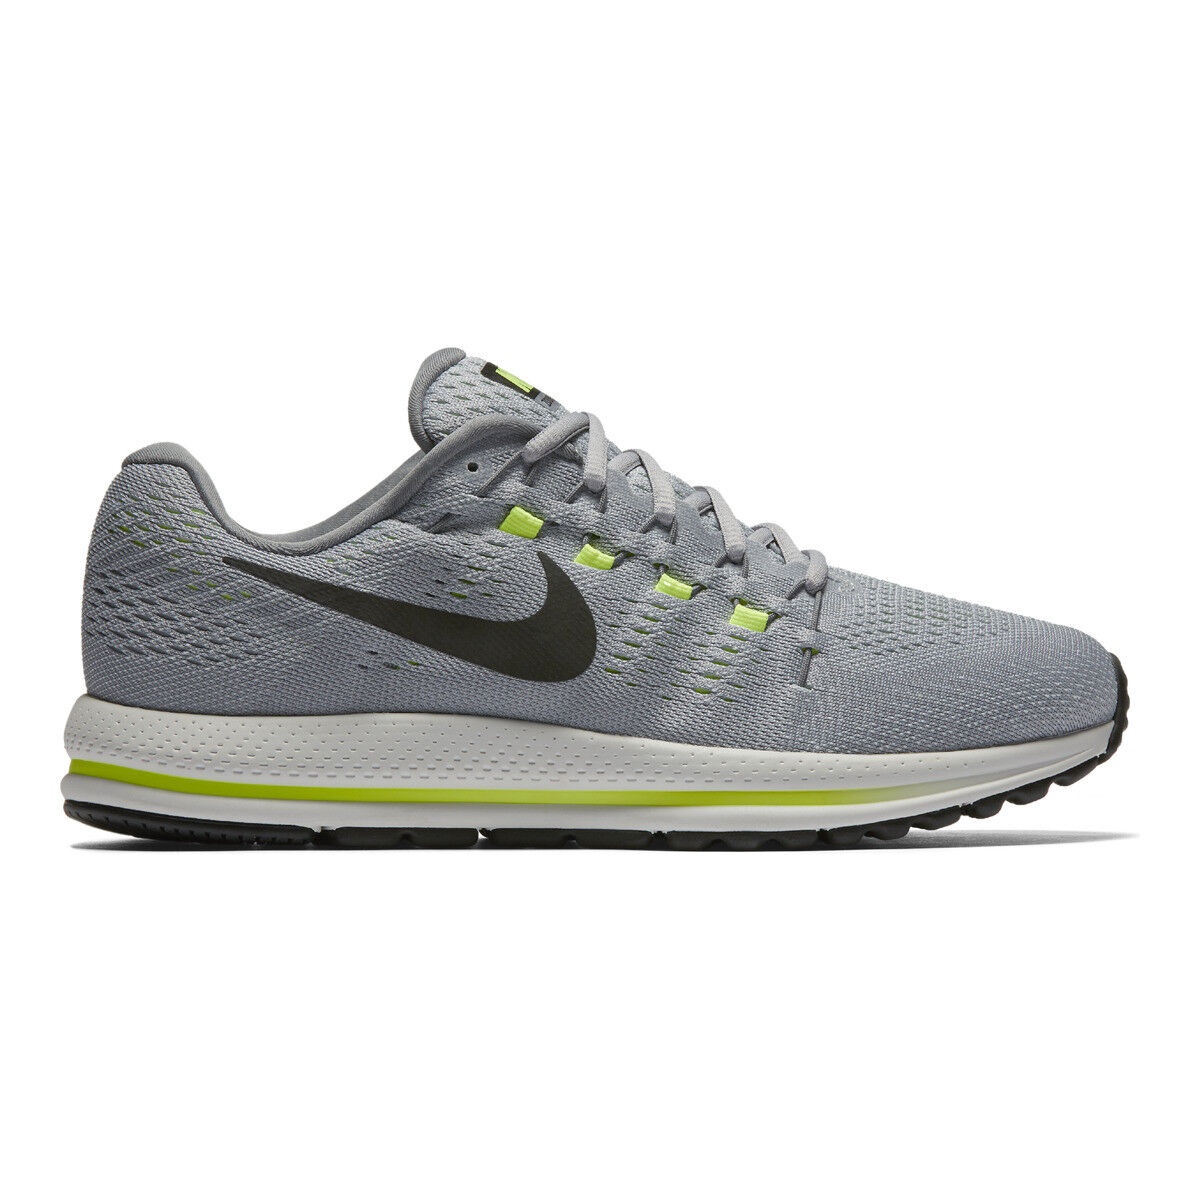 3818e55c2 Nike Air Zoom Vomero 12 Grey Black Volt Men Running Shoes SNEAKERS ...